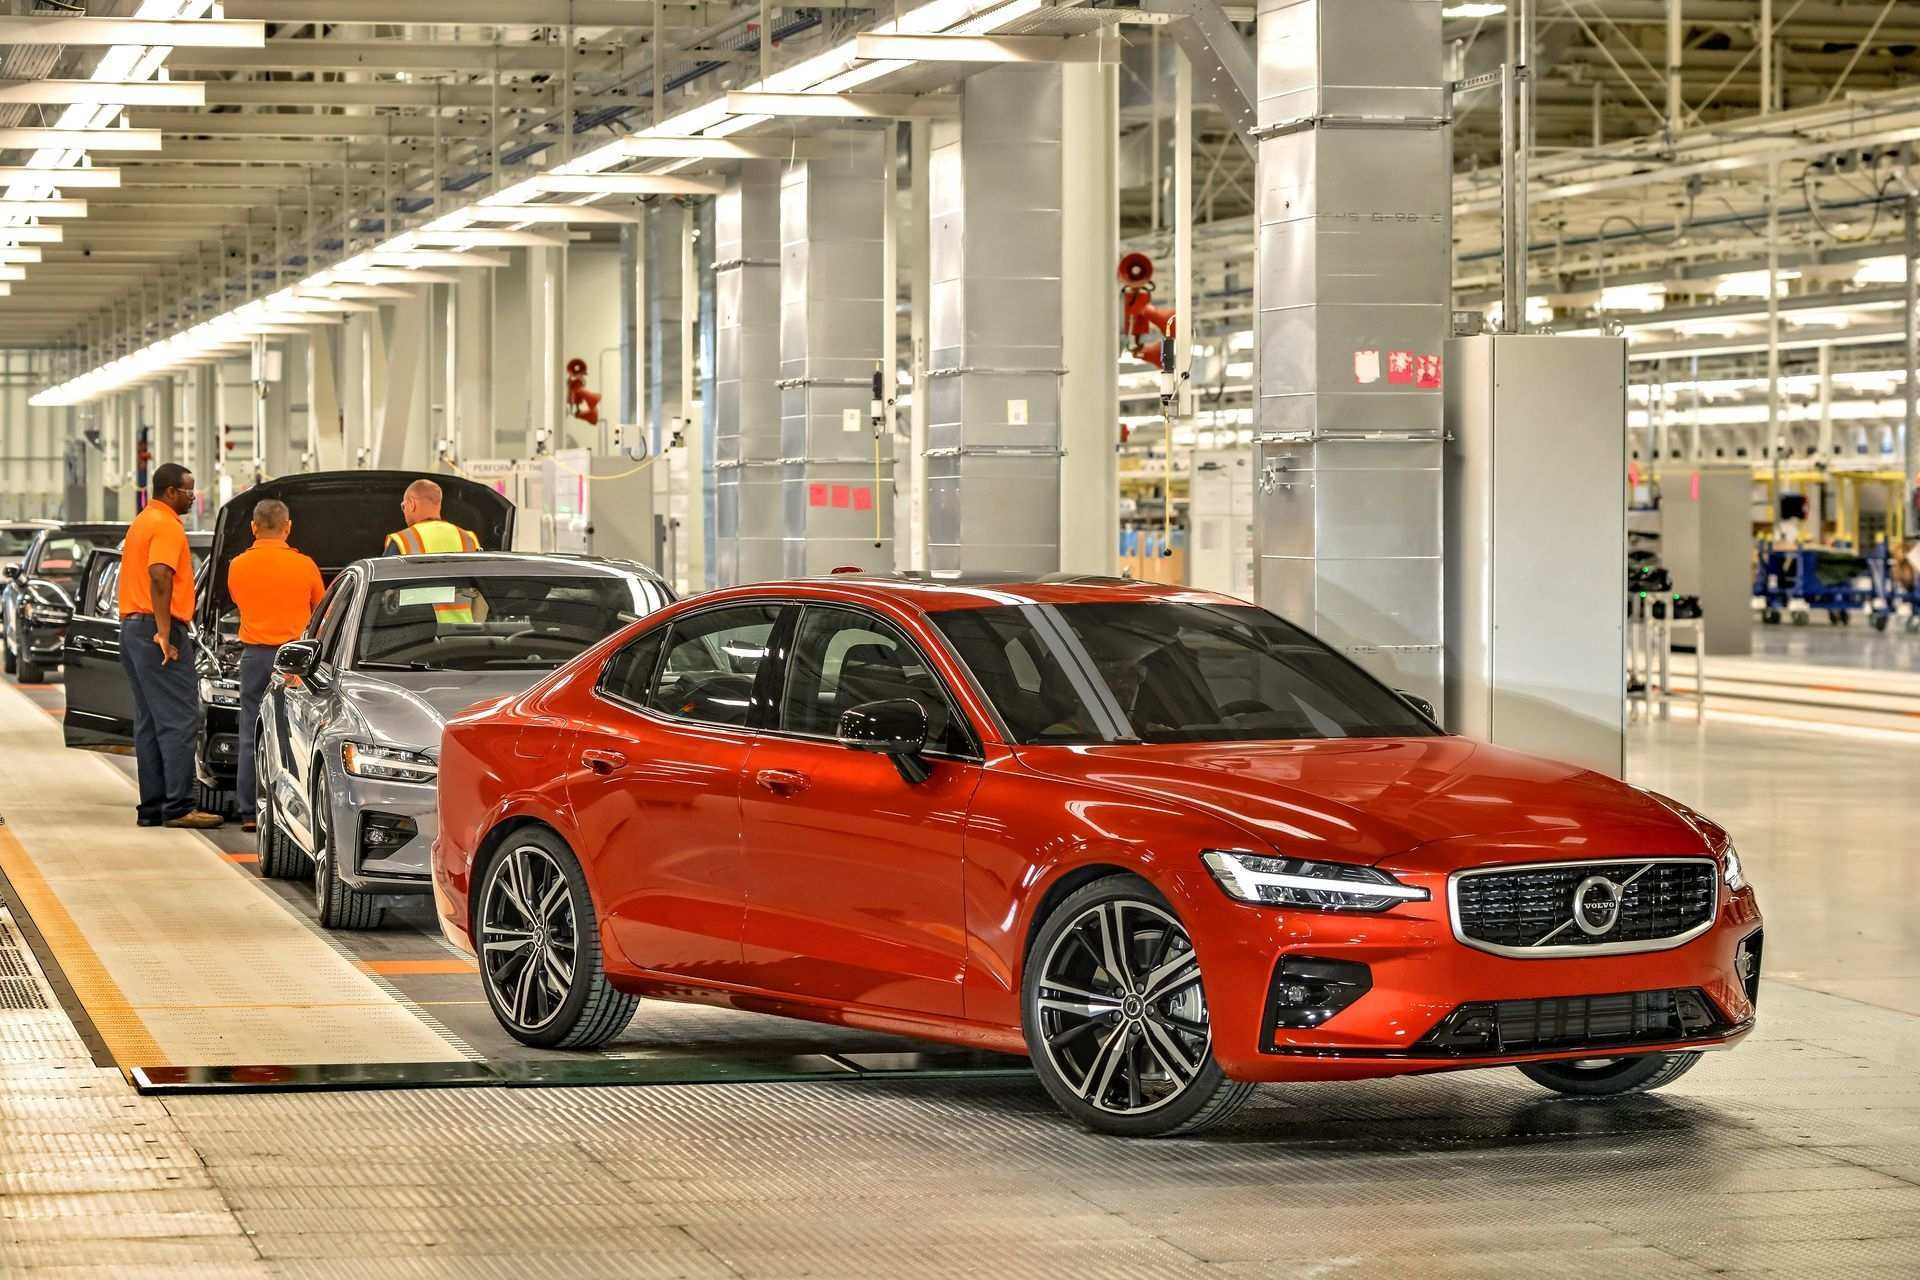 99 Gallery of New Review Of 2019 Volvo S60 Spesification Release with New Review Of 2019 Volvo S60 Spesification